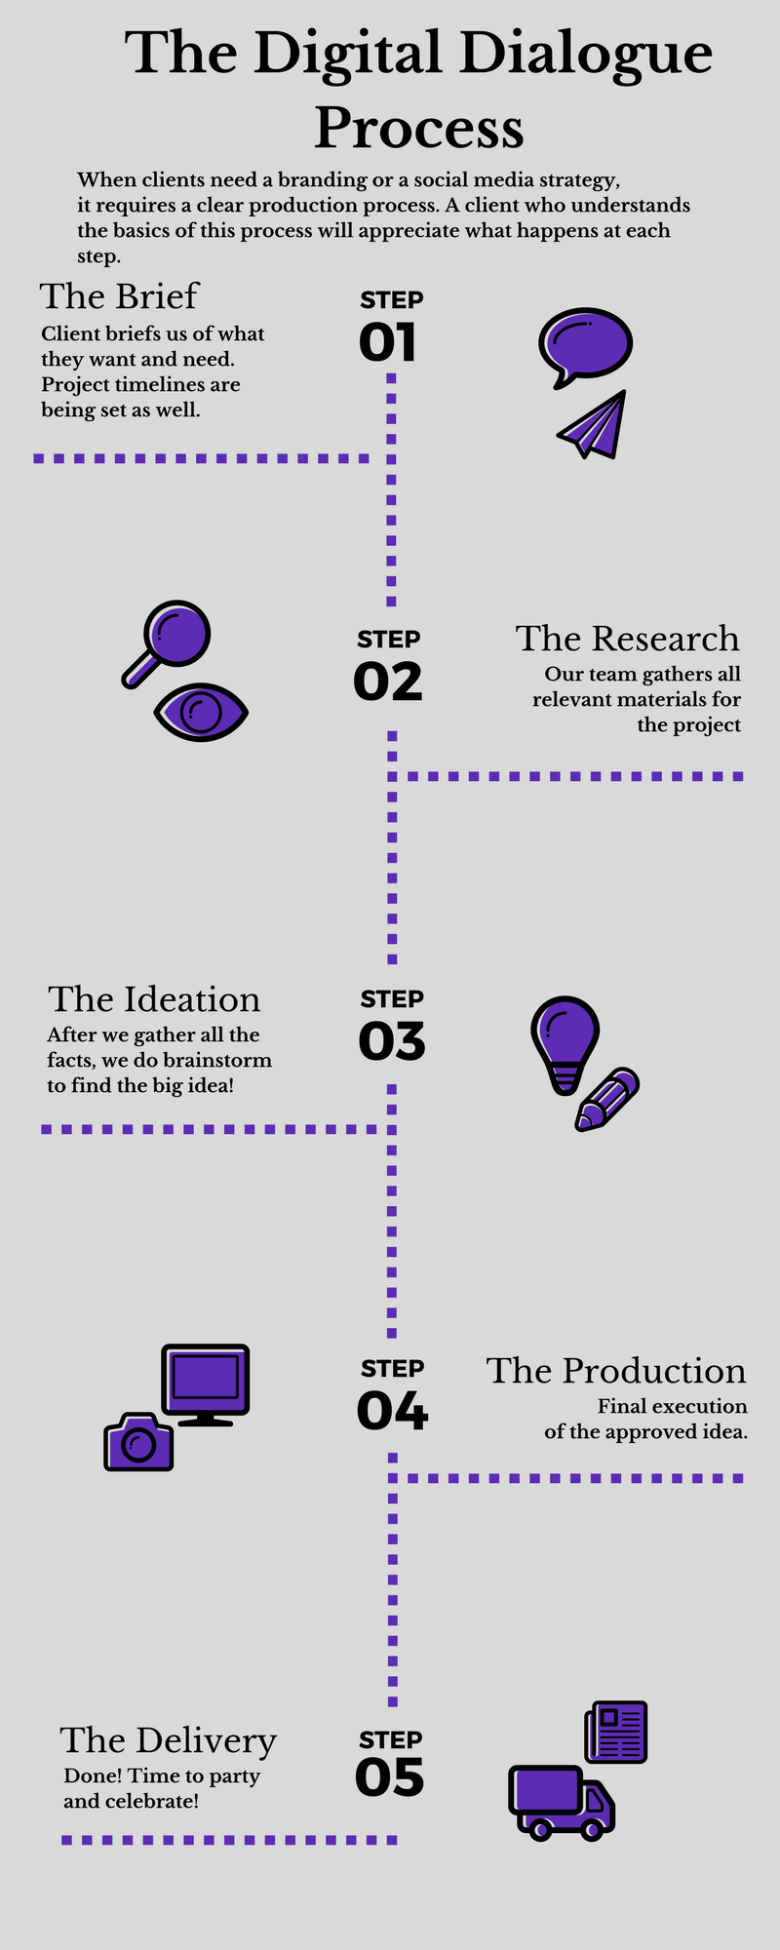 The Digital Dialogue Process